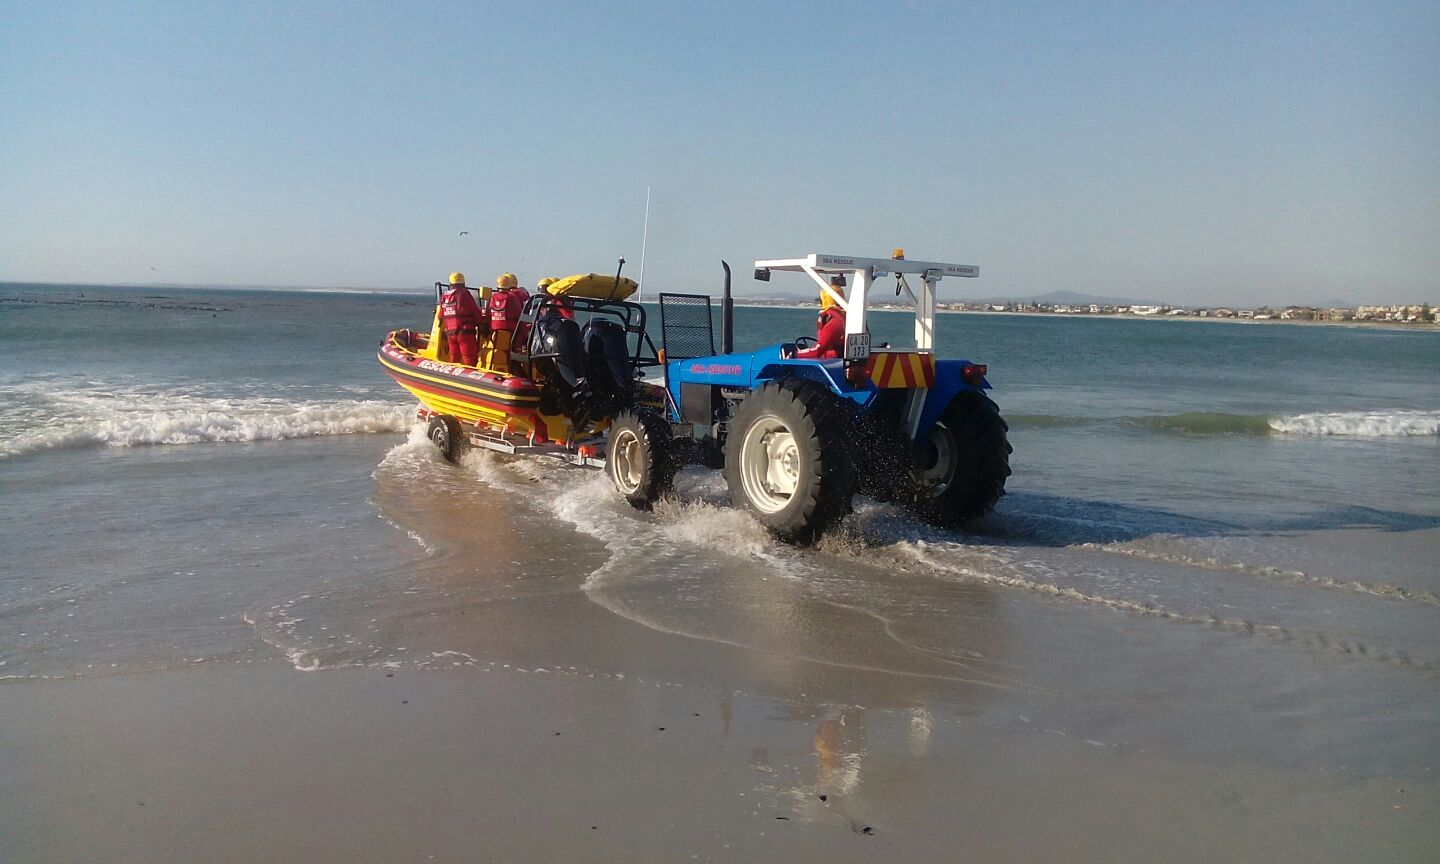 Forward launching dolly at Melkbosstrand